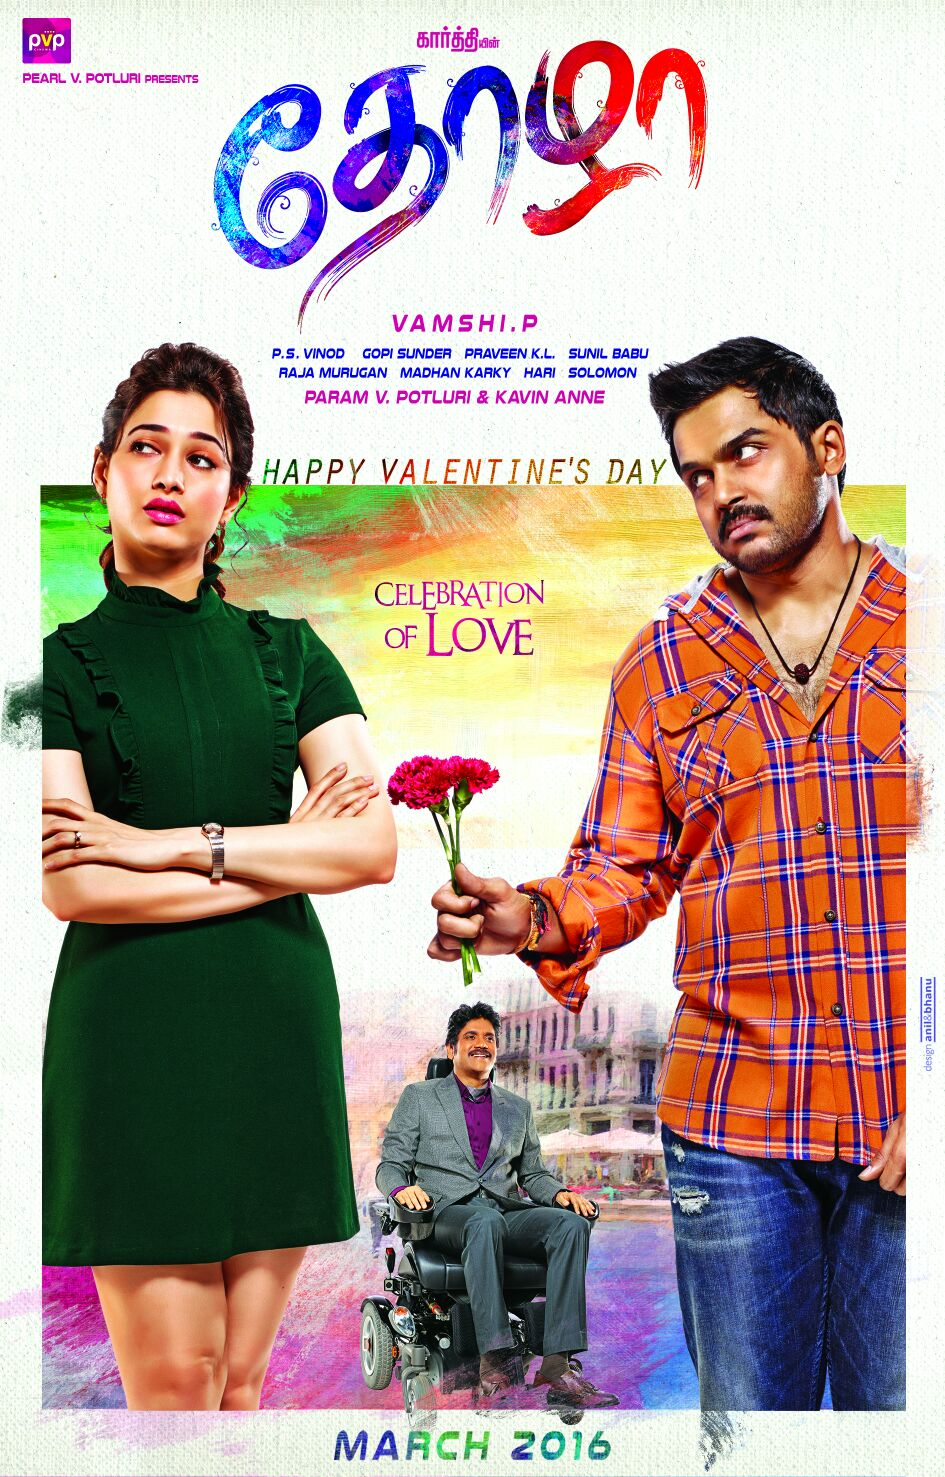 Watch Thozha (2016) Full Audio Songs Mp3 Jukebox Vevo 320Kbps Video Songs With Lyrics Youtube HD Watch Online Free Download